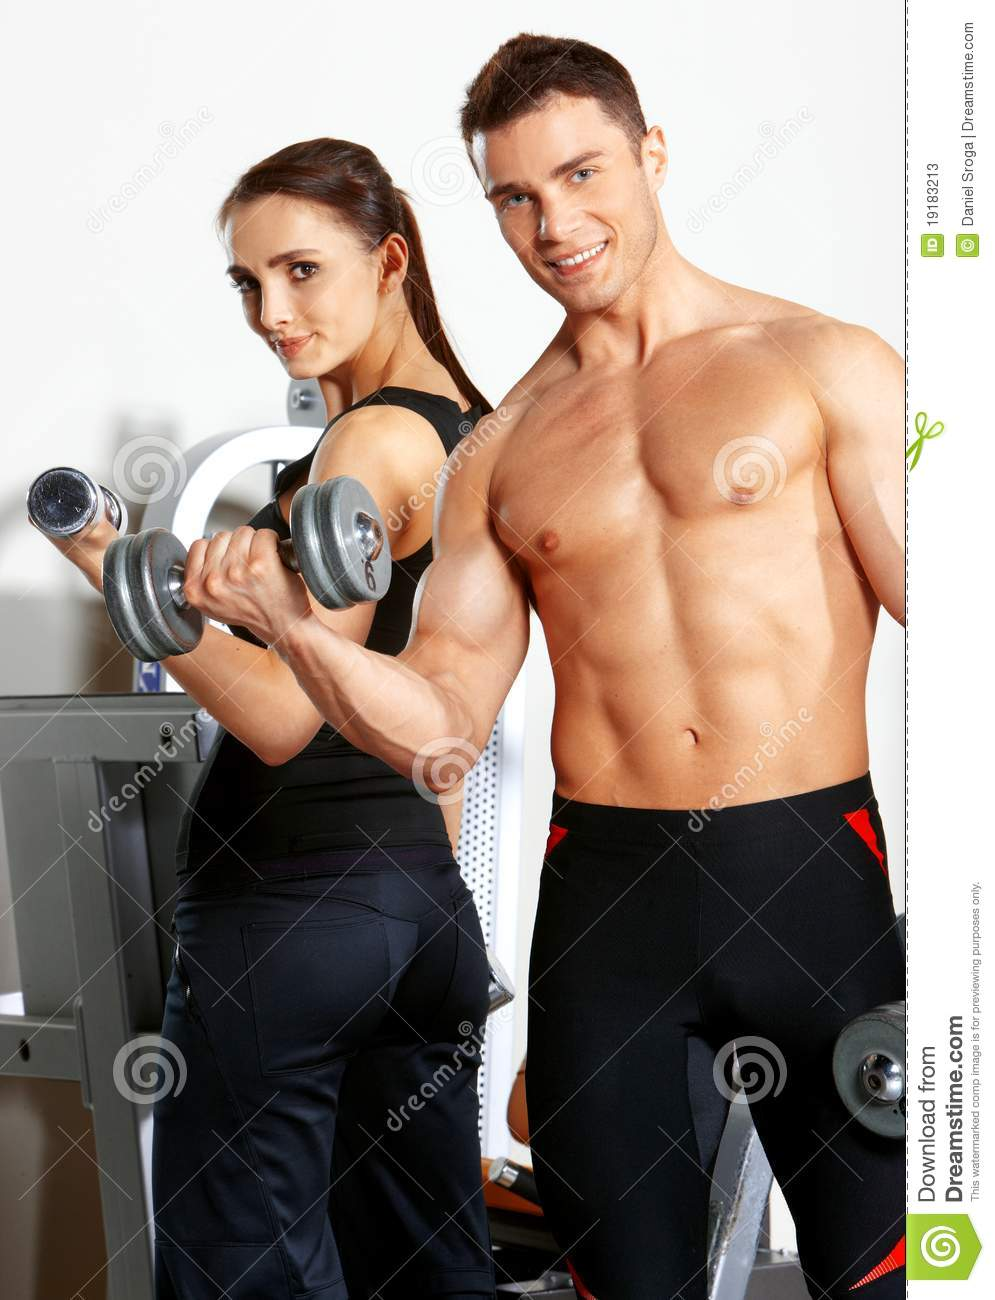 Couple At The Gym Stock Photos - Image: 19183213